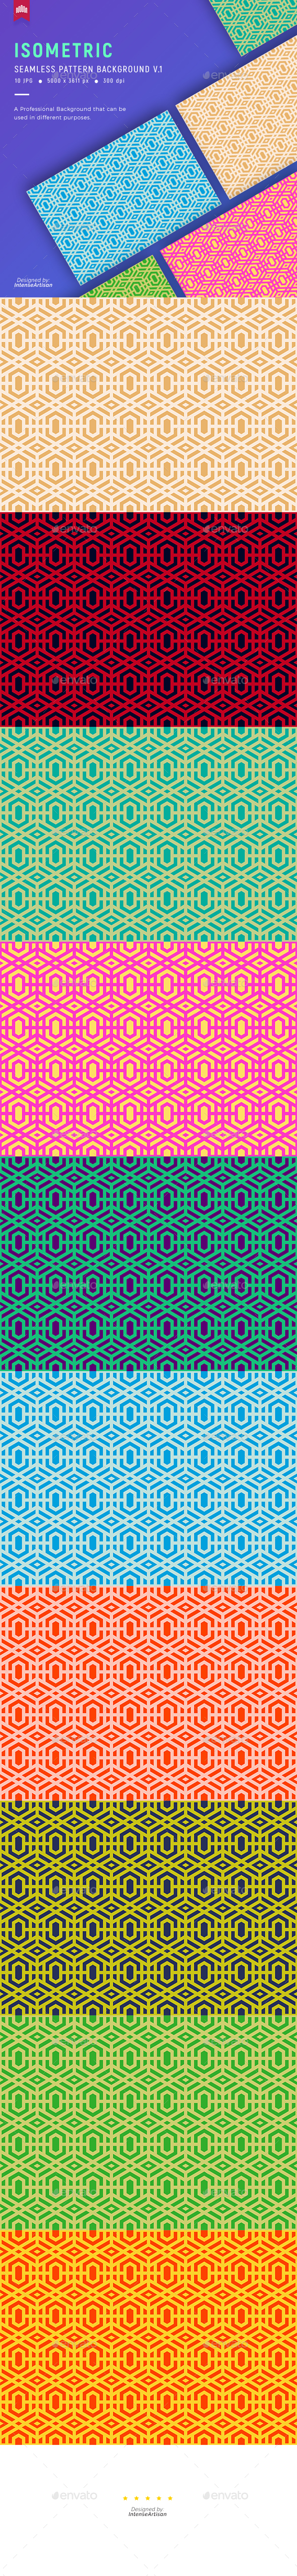 Isometric Seamless Pattern Background V.1 - Patterns Backgrounds